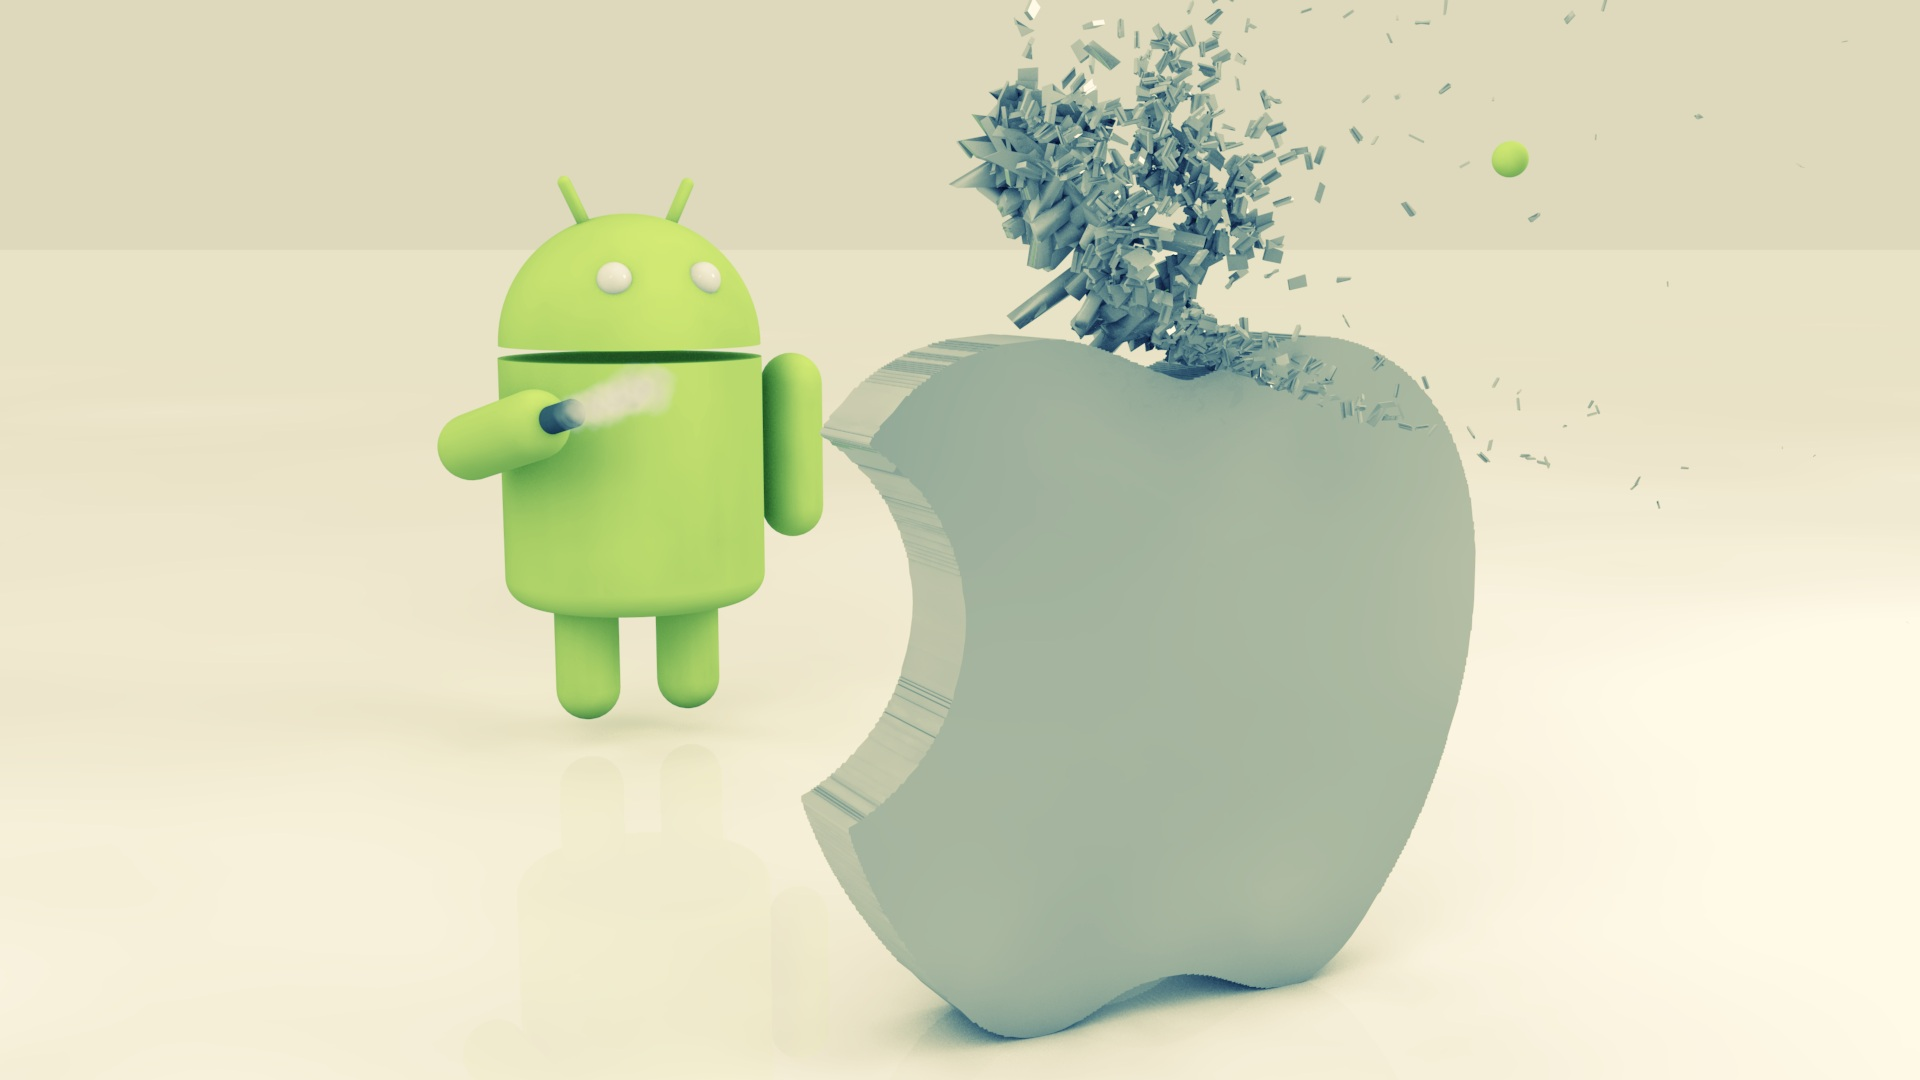 android shoot apple image hd